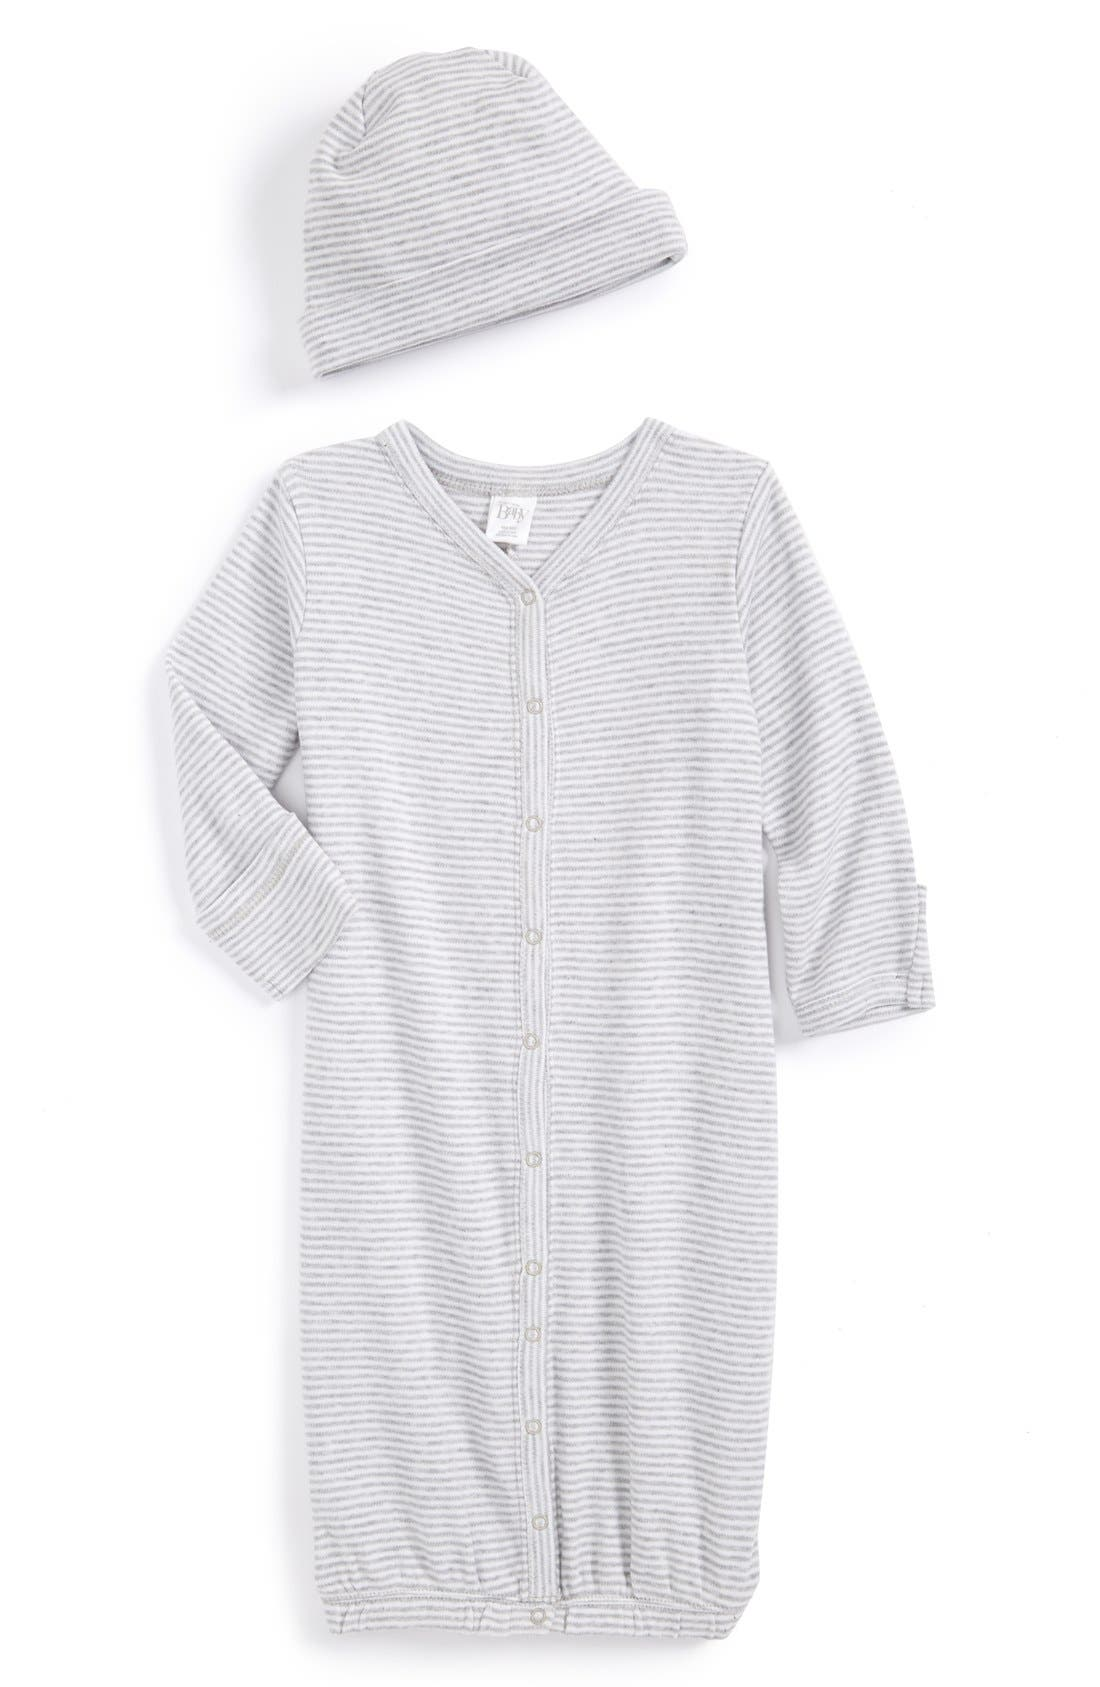 NORDSTROM BABY Convertible Cotton Gown & Hat, Main, color, GREY ASH HEATHER FINE STRIPE